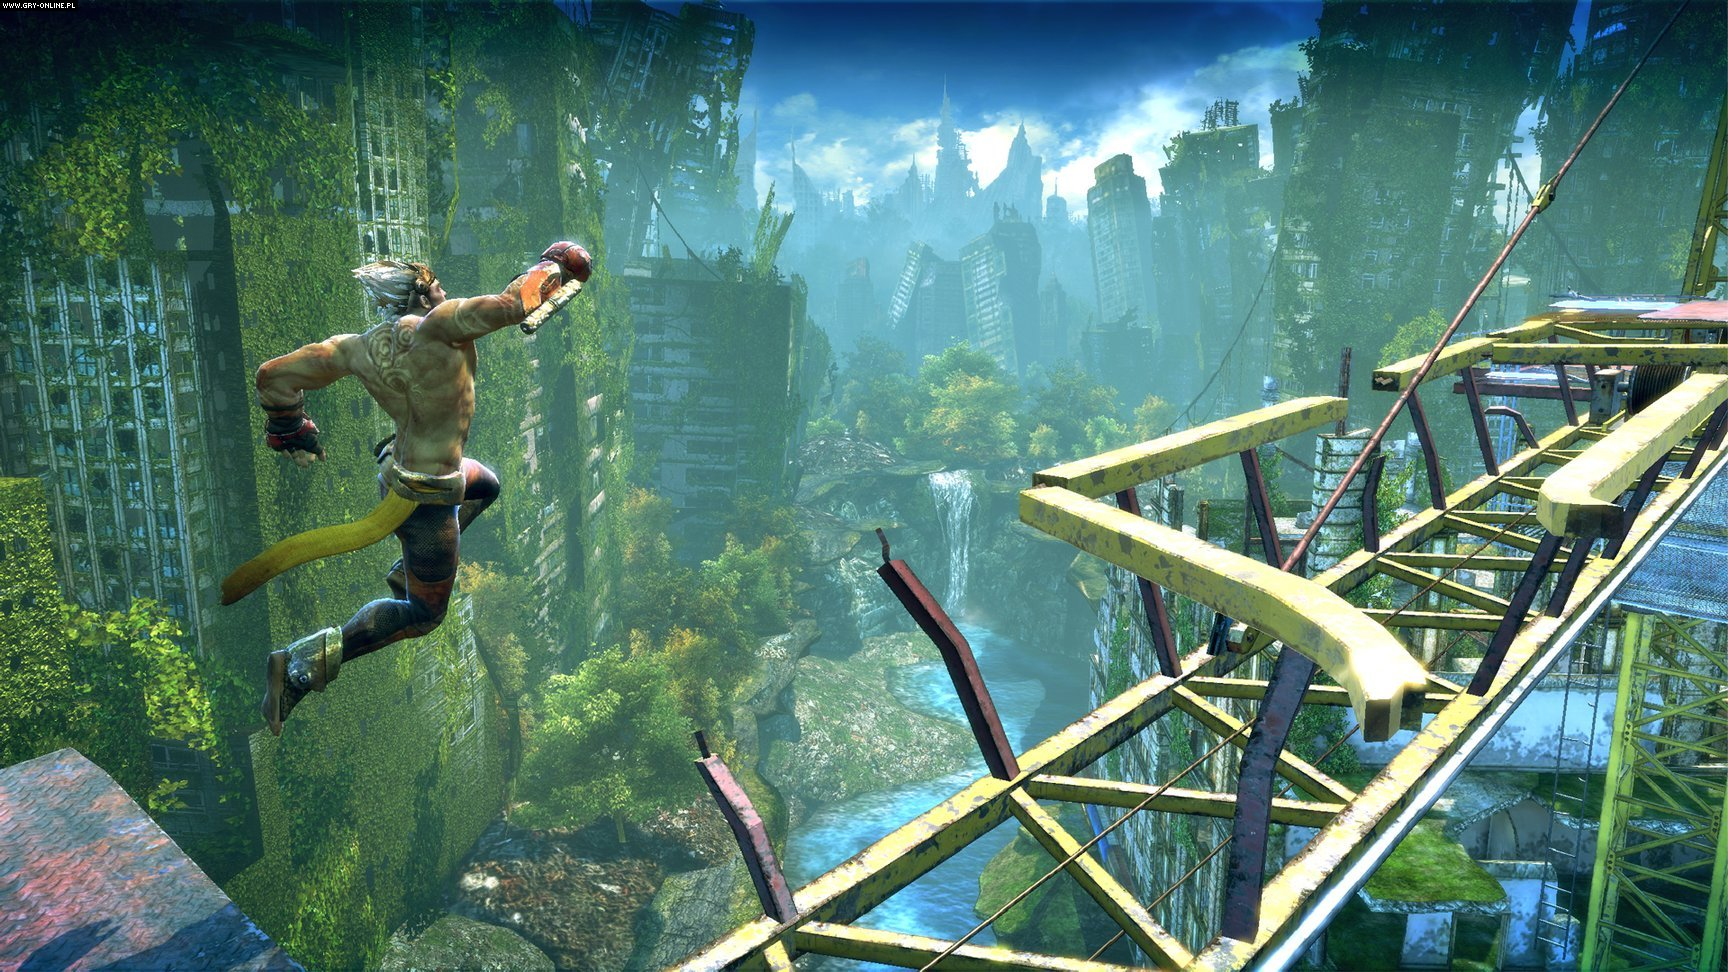 Enslaved: Odyssey to the West PC Games Image 2/164, Ninja Theory, Bandai Namco Entertainment